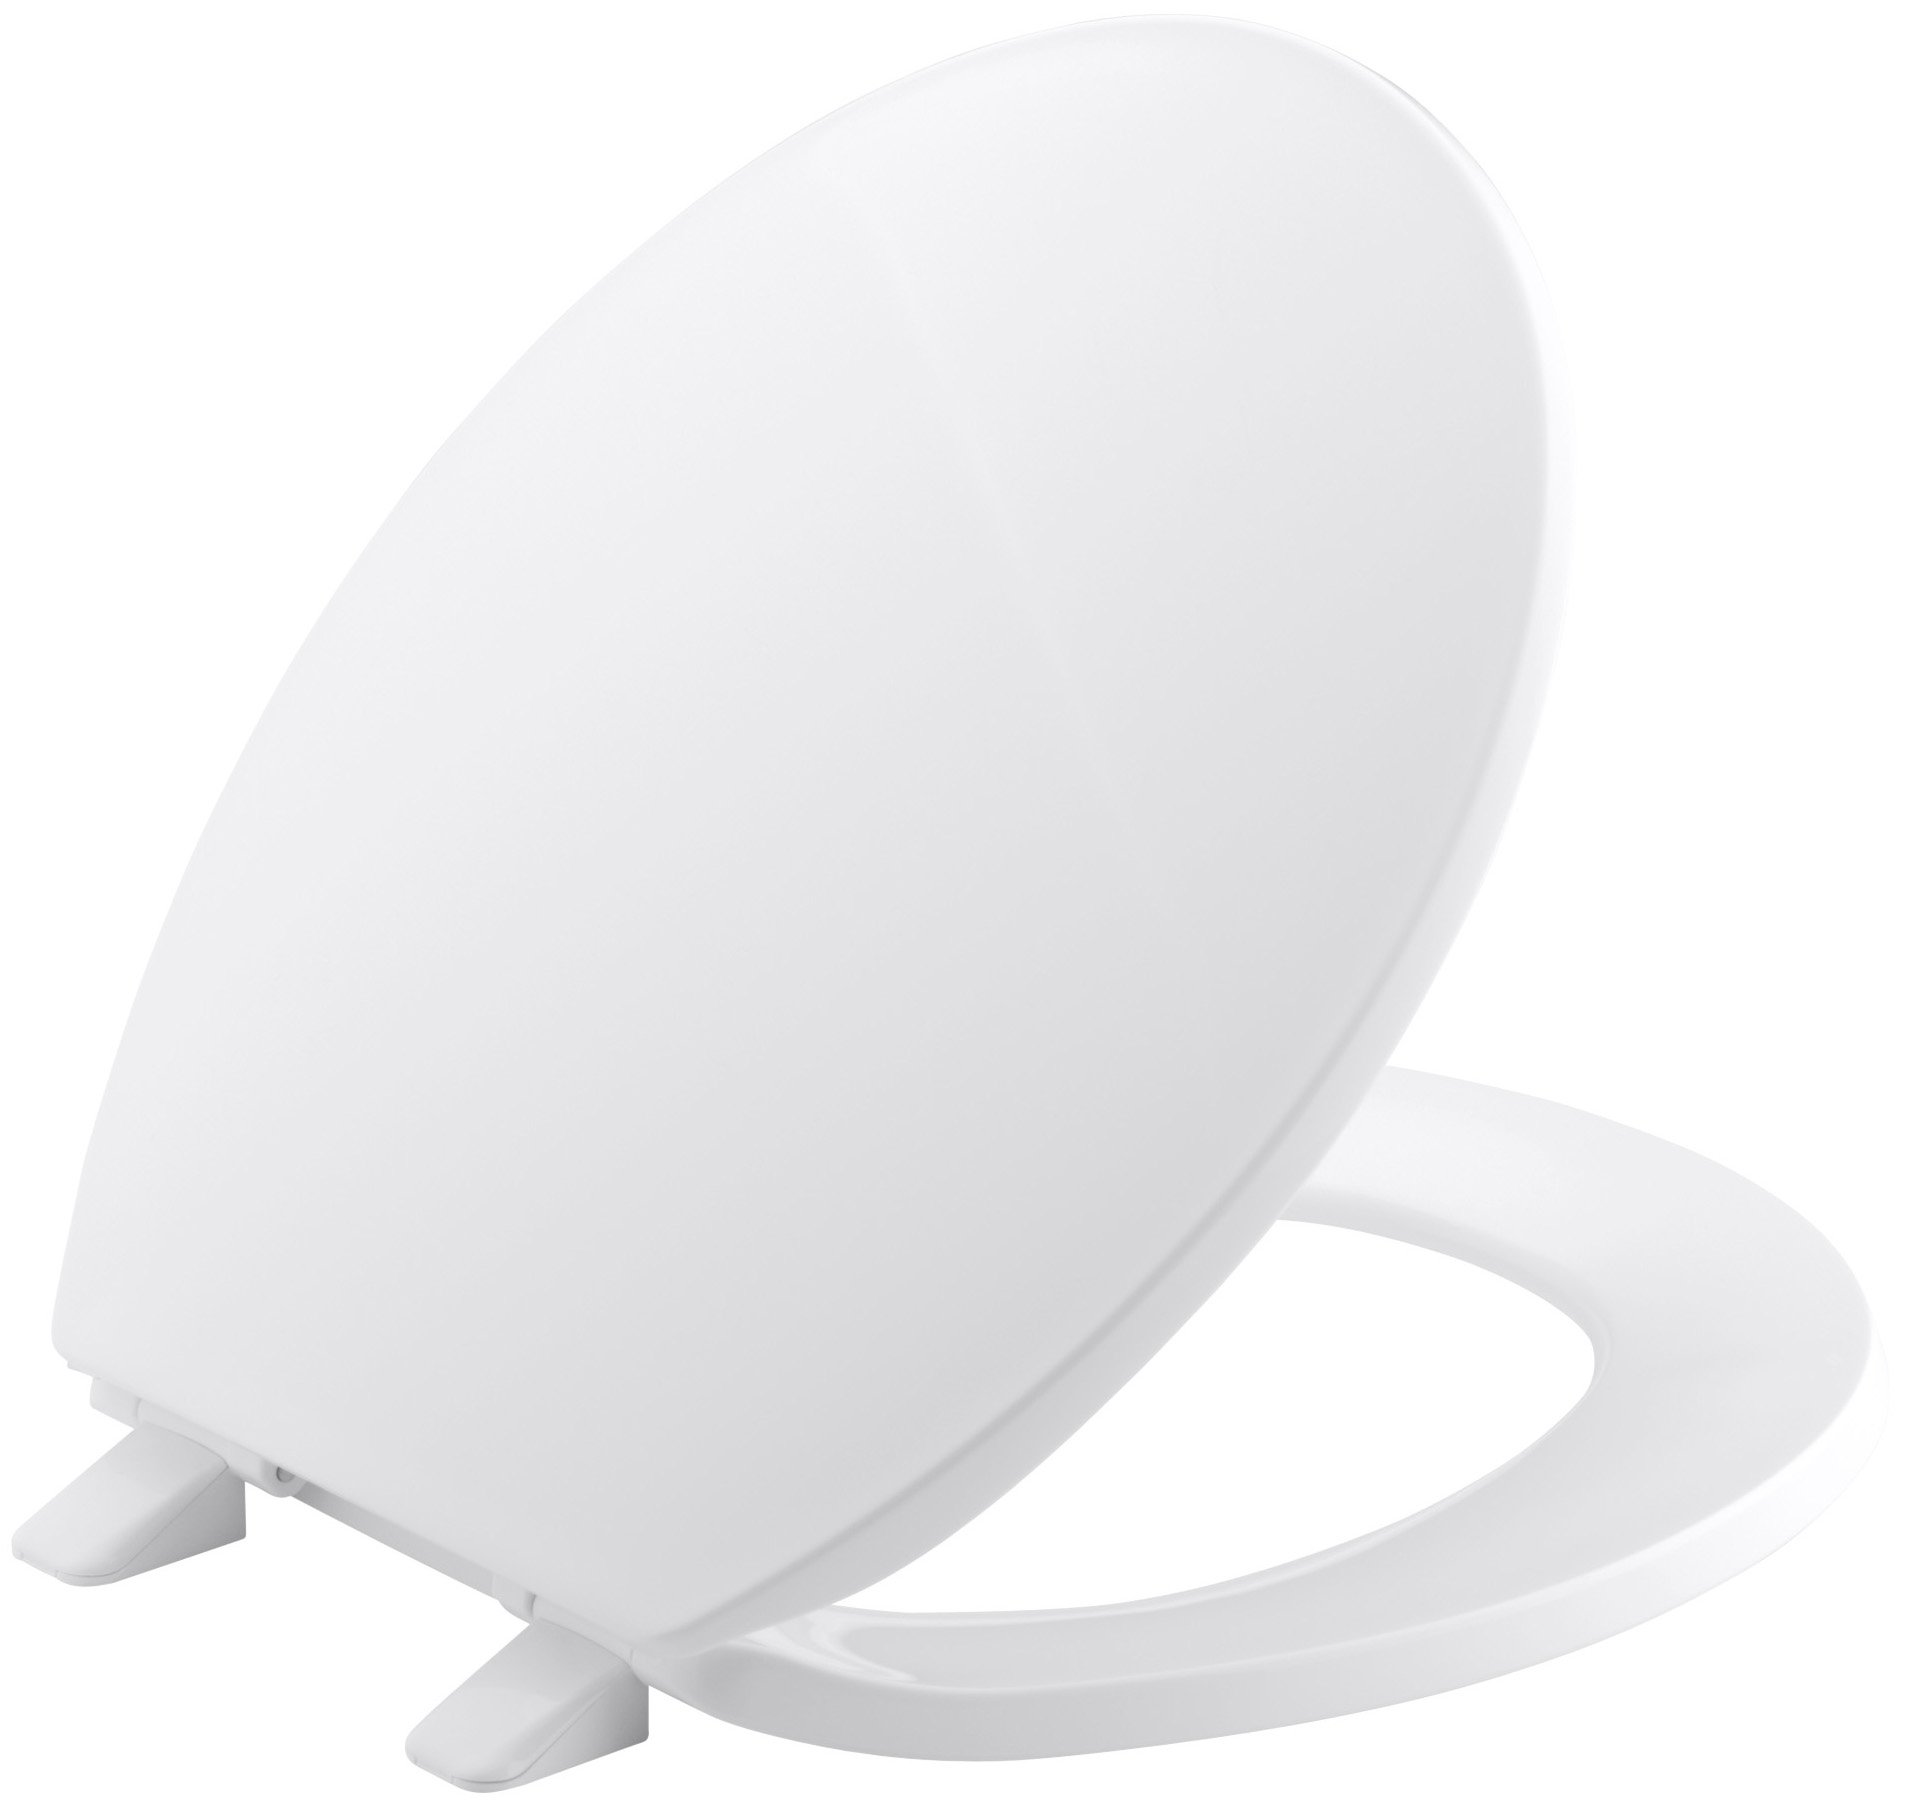 Kohler  K-4775-0 Brevia with Quick-Release Hinges Round-front Toilet Seat in White